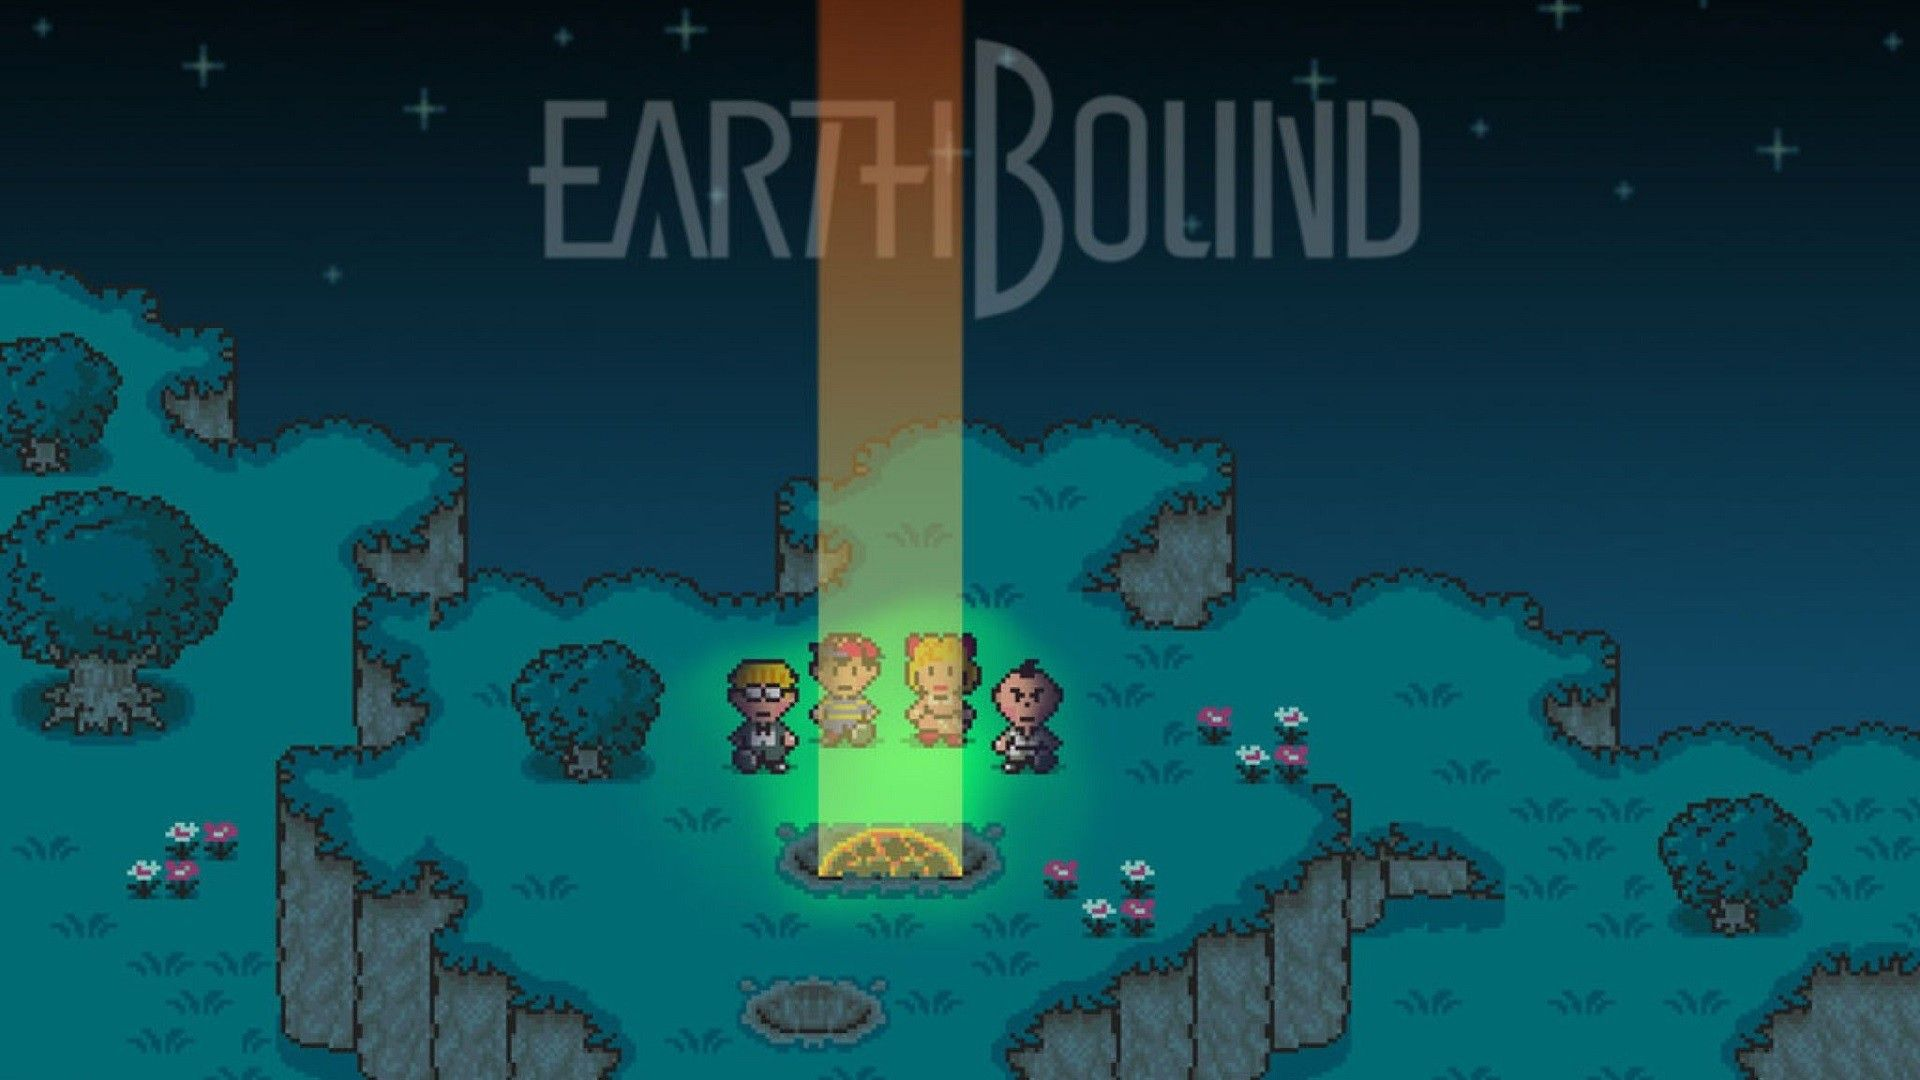 EarthBound Wallpapers   Top EarthBound Backgrounds 1920x1080